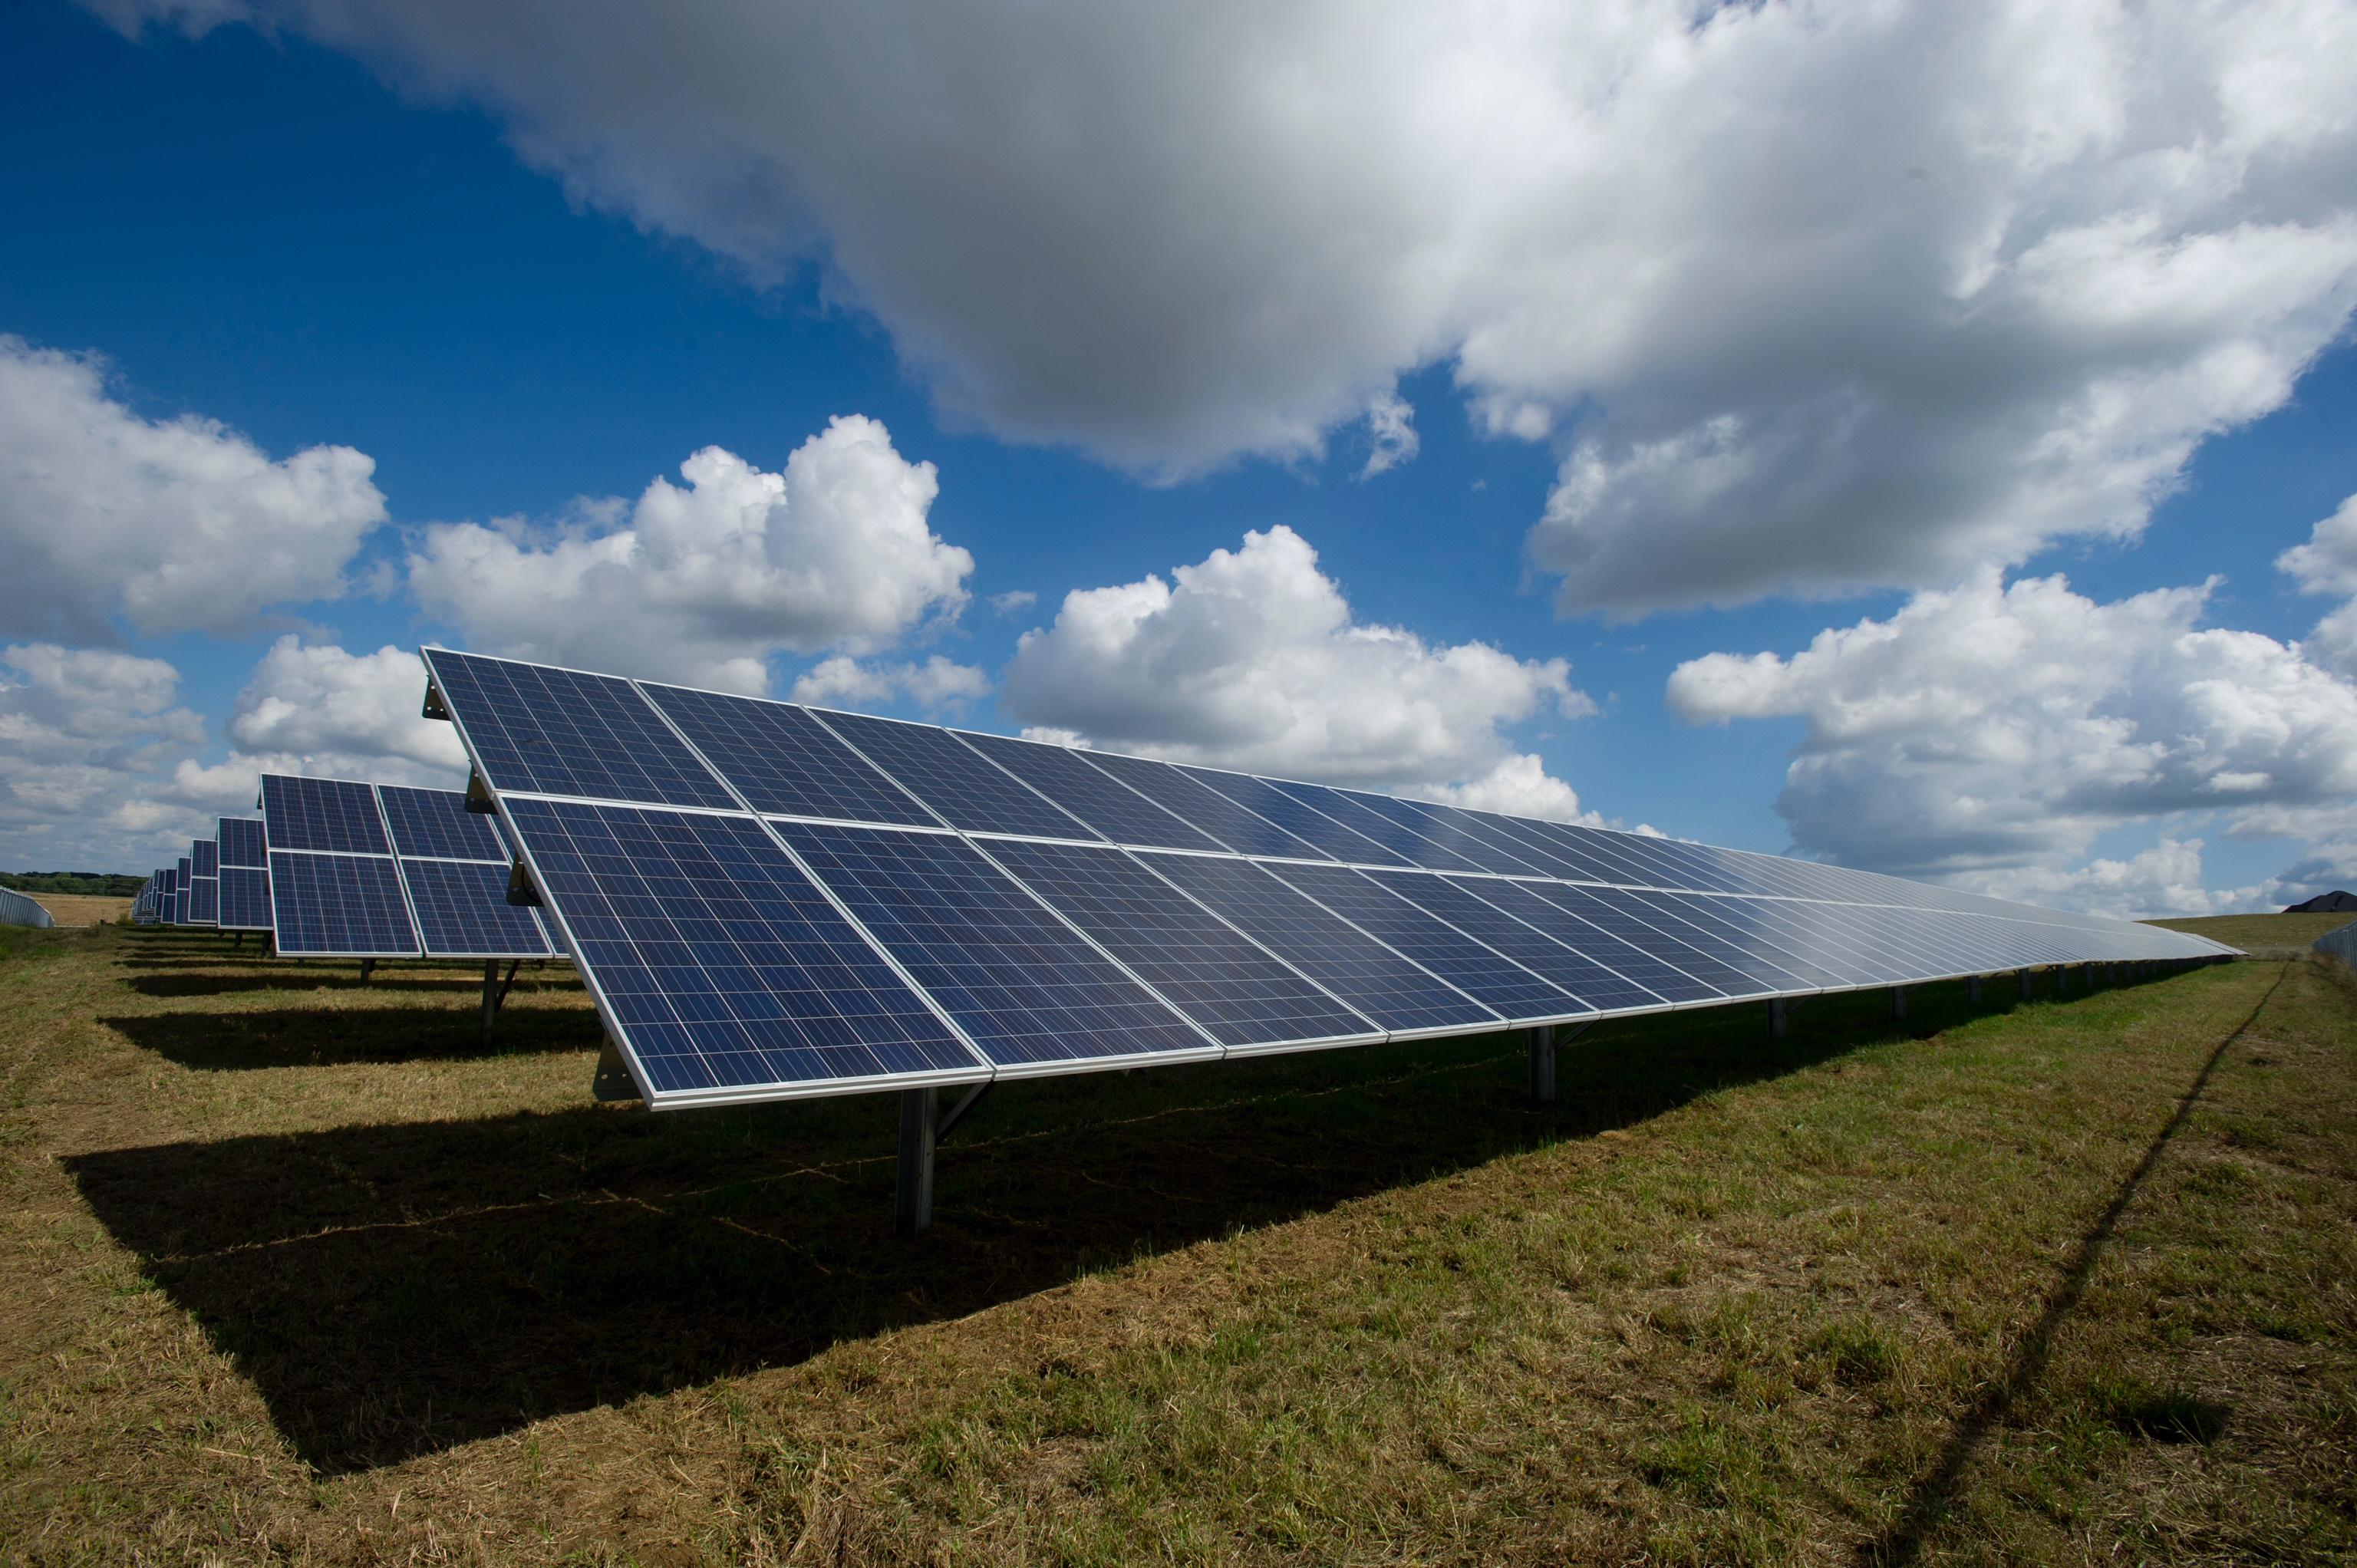 Abdul Latif Jameel Energy secures financing for Mexican solar farm that will power 150,000 homes